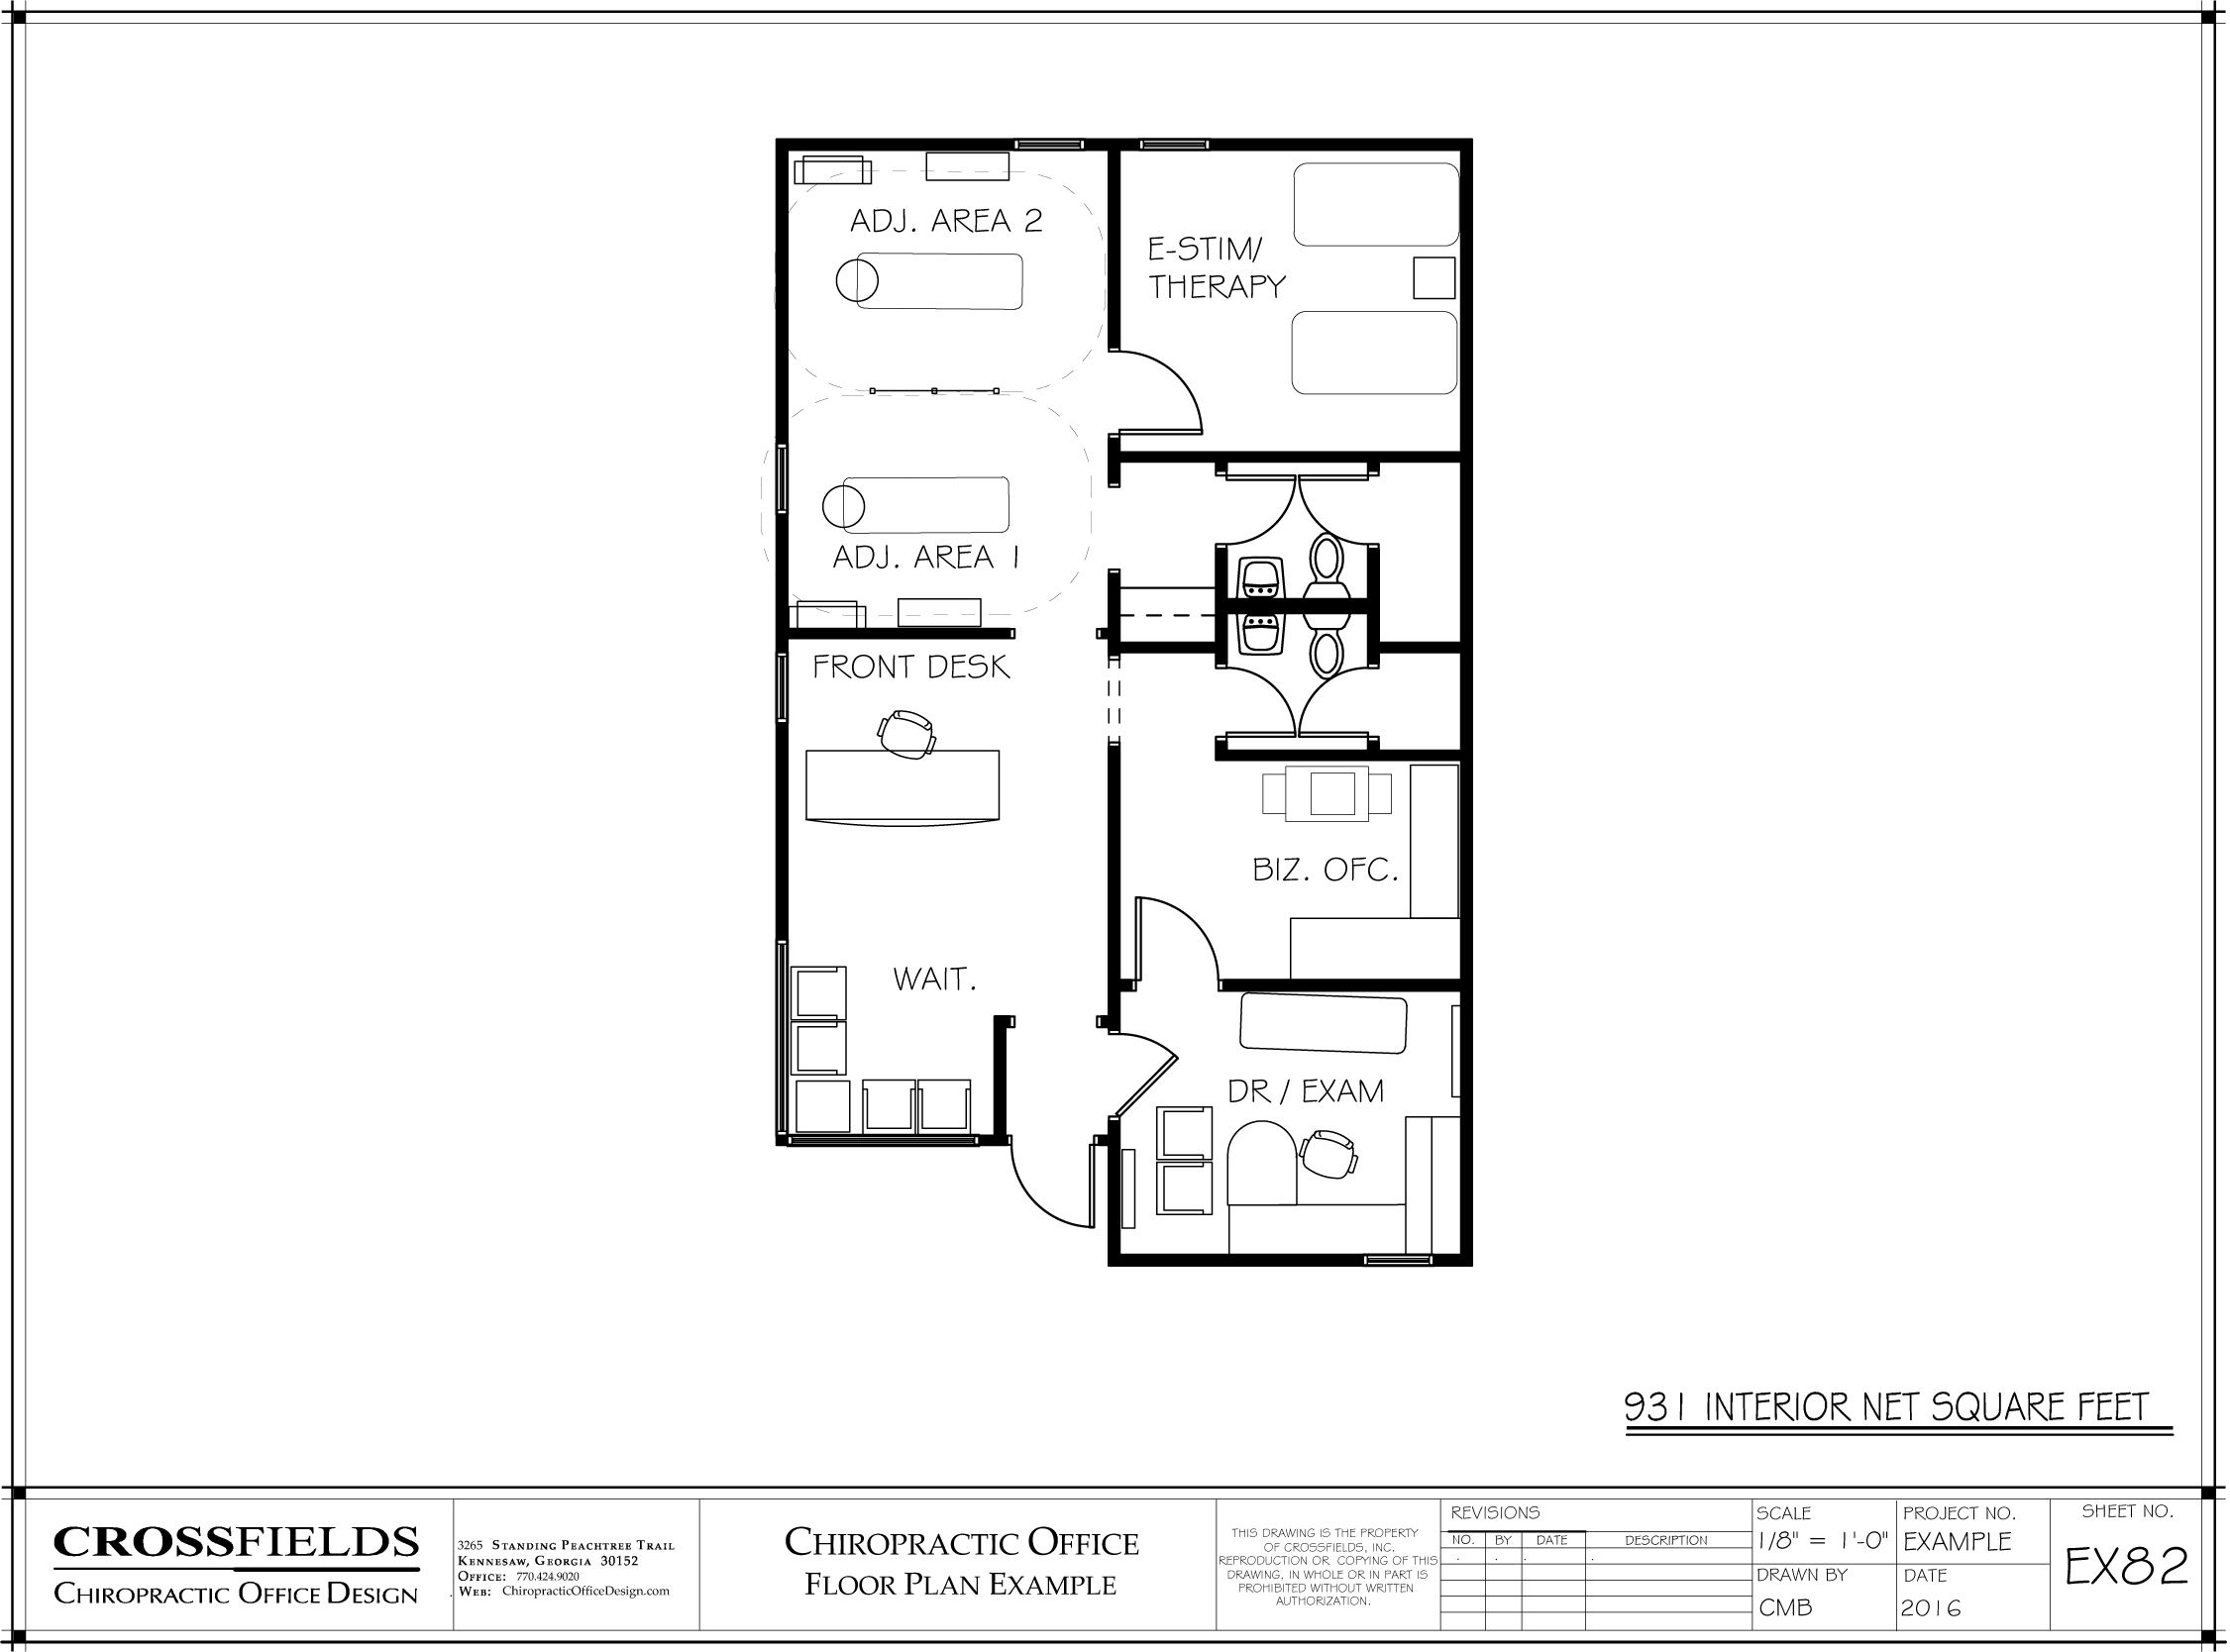 Chiropractic Office Floor Plans Versatile Medical Office Layouts Office Floor Plan Chiropractic Office Chiropractic Office Design